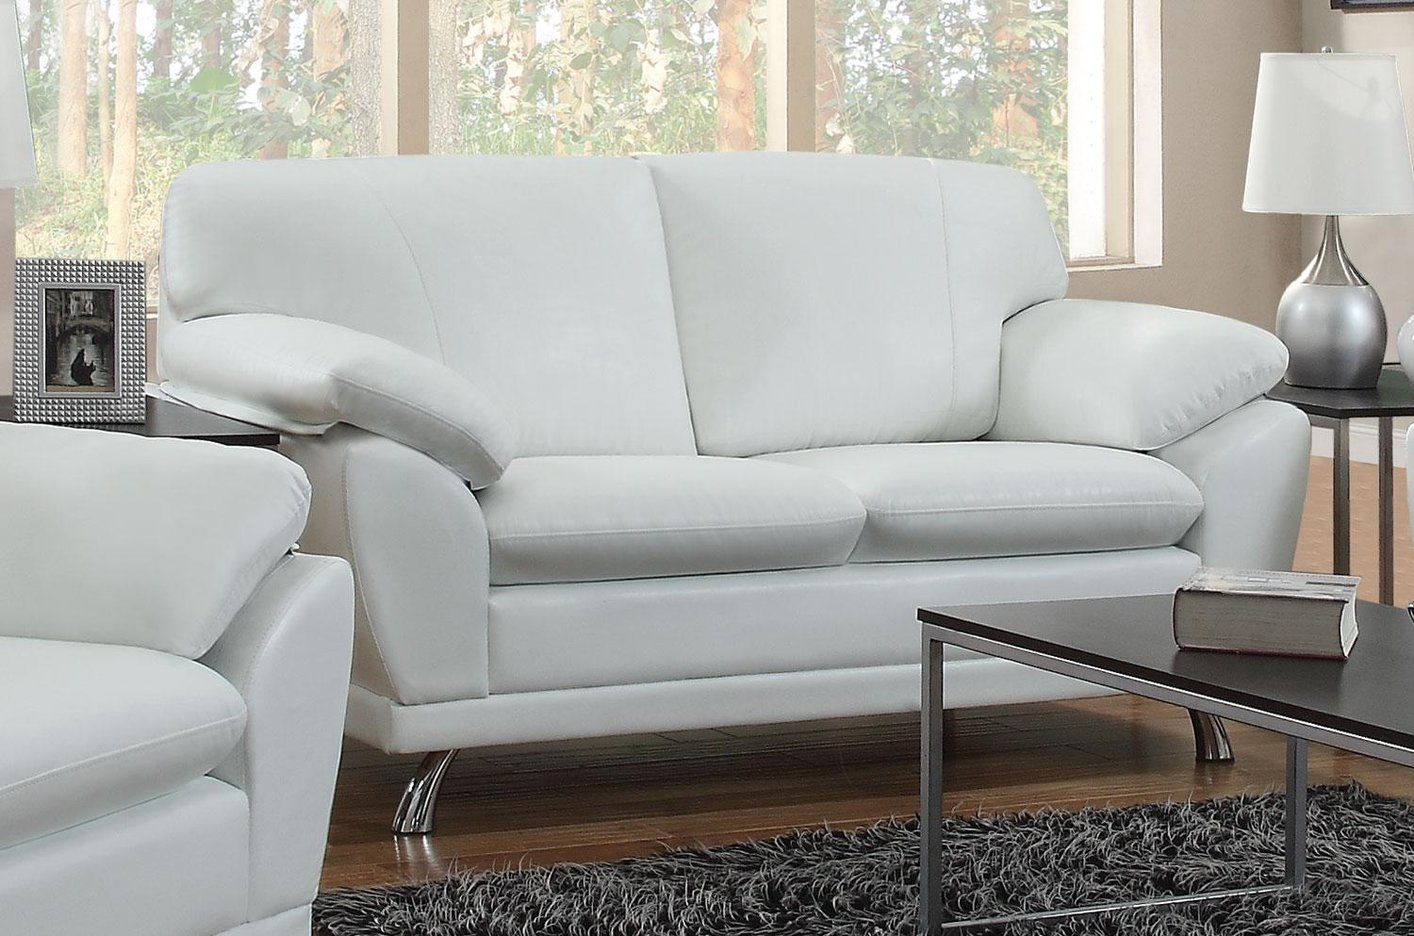 White Leather Loveseat Steal A Sofa Furniture Outlet Los